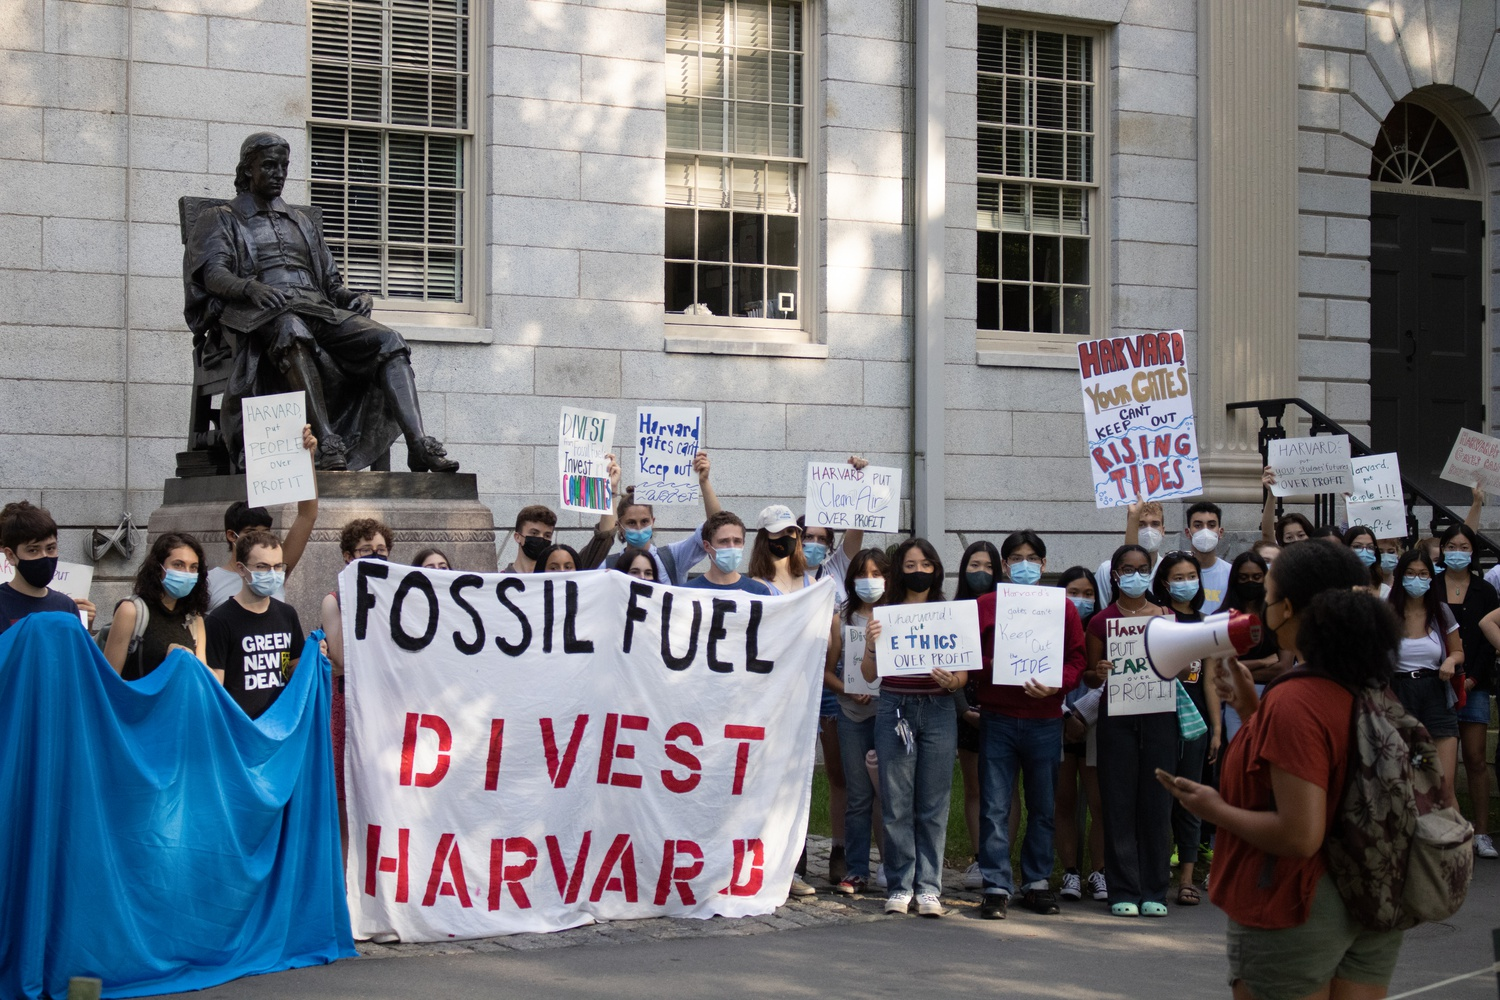 Students held signs advocating for Harvard's divestment from fossil fuels in front of University Hall Tuesday afternoon.